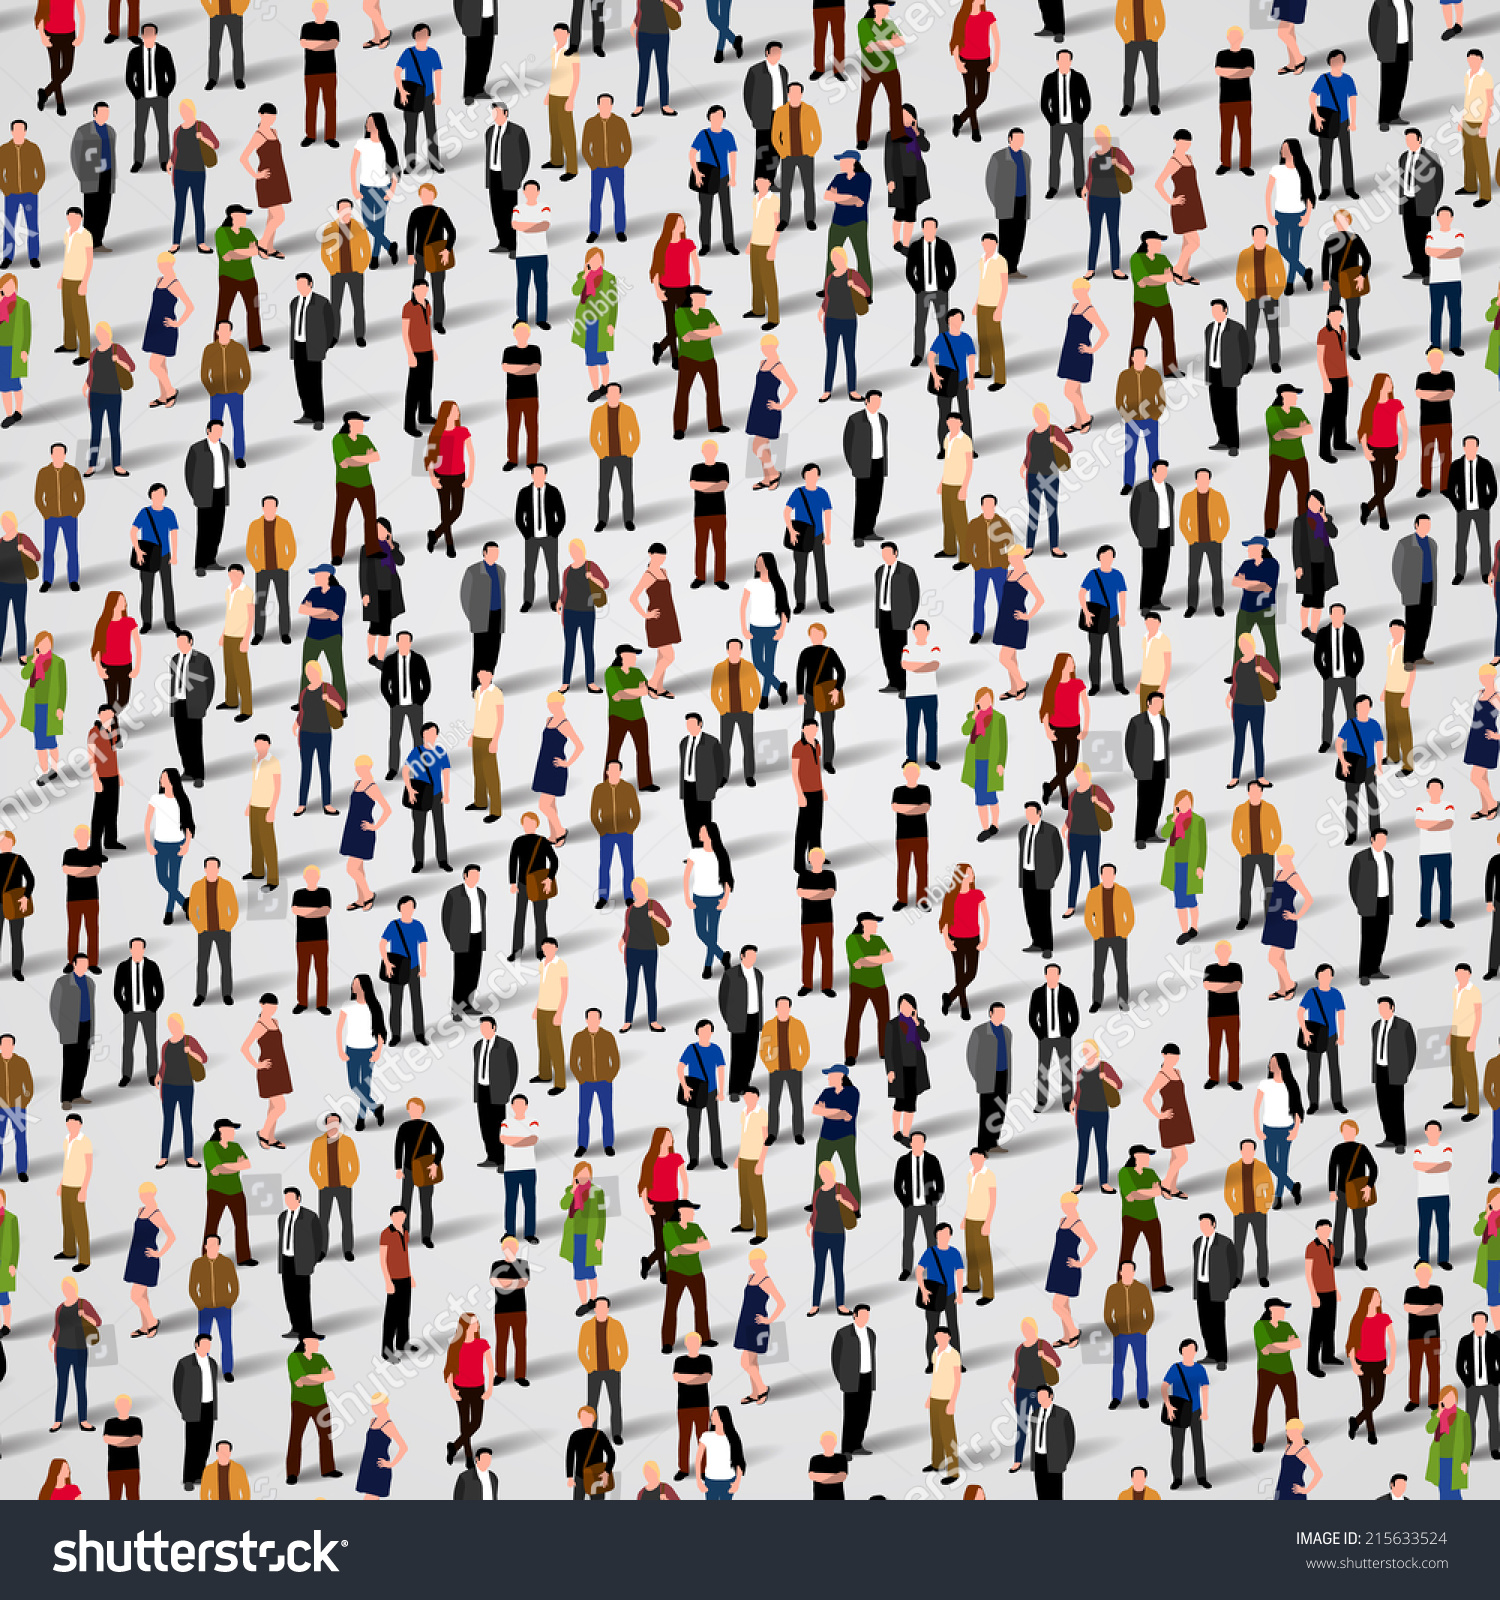 Large Group People Vector Seamless Background Stock Vector 215633524 - Shutterstock